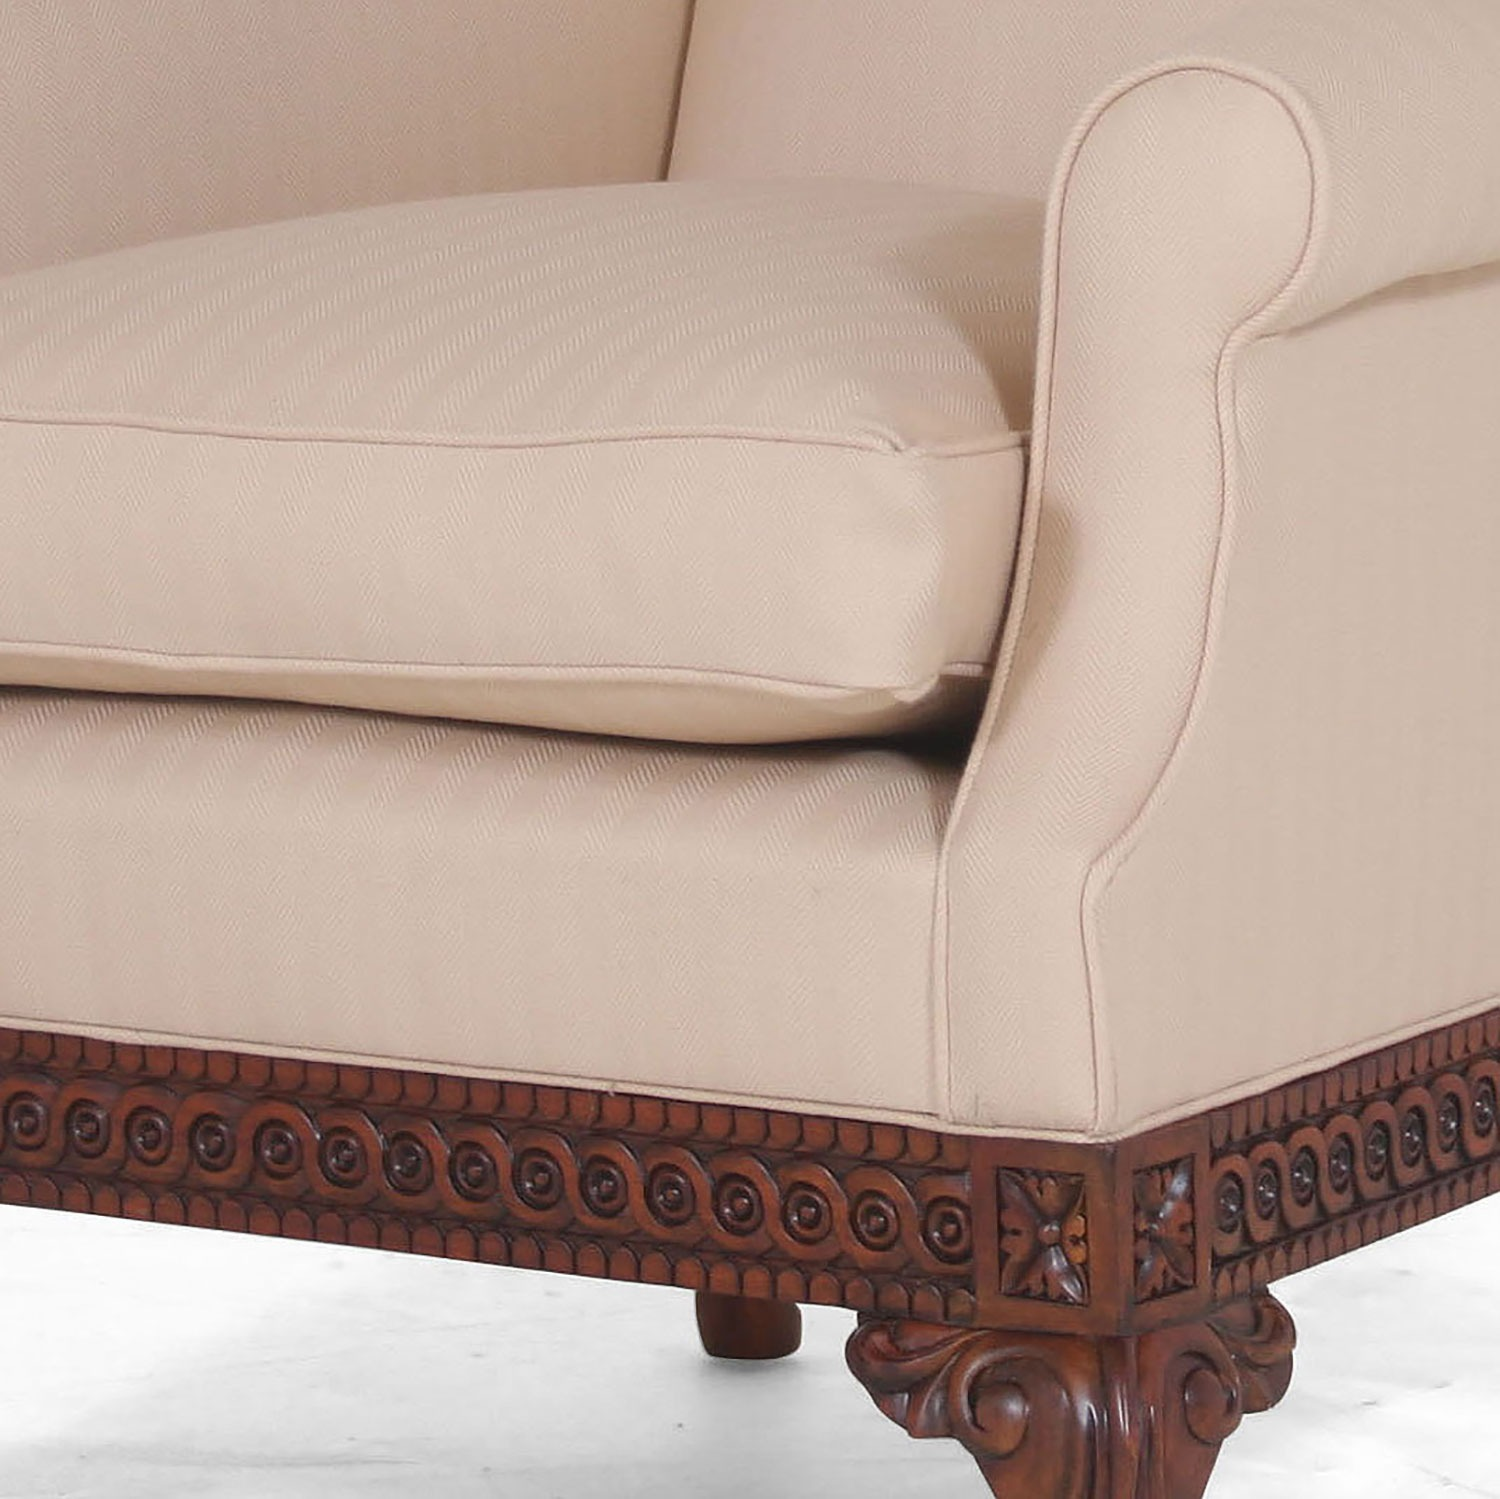 Pride Regency style suite in The Isle Mill wool - Almond